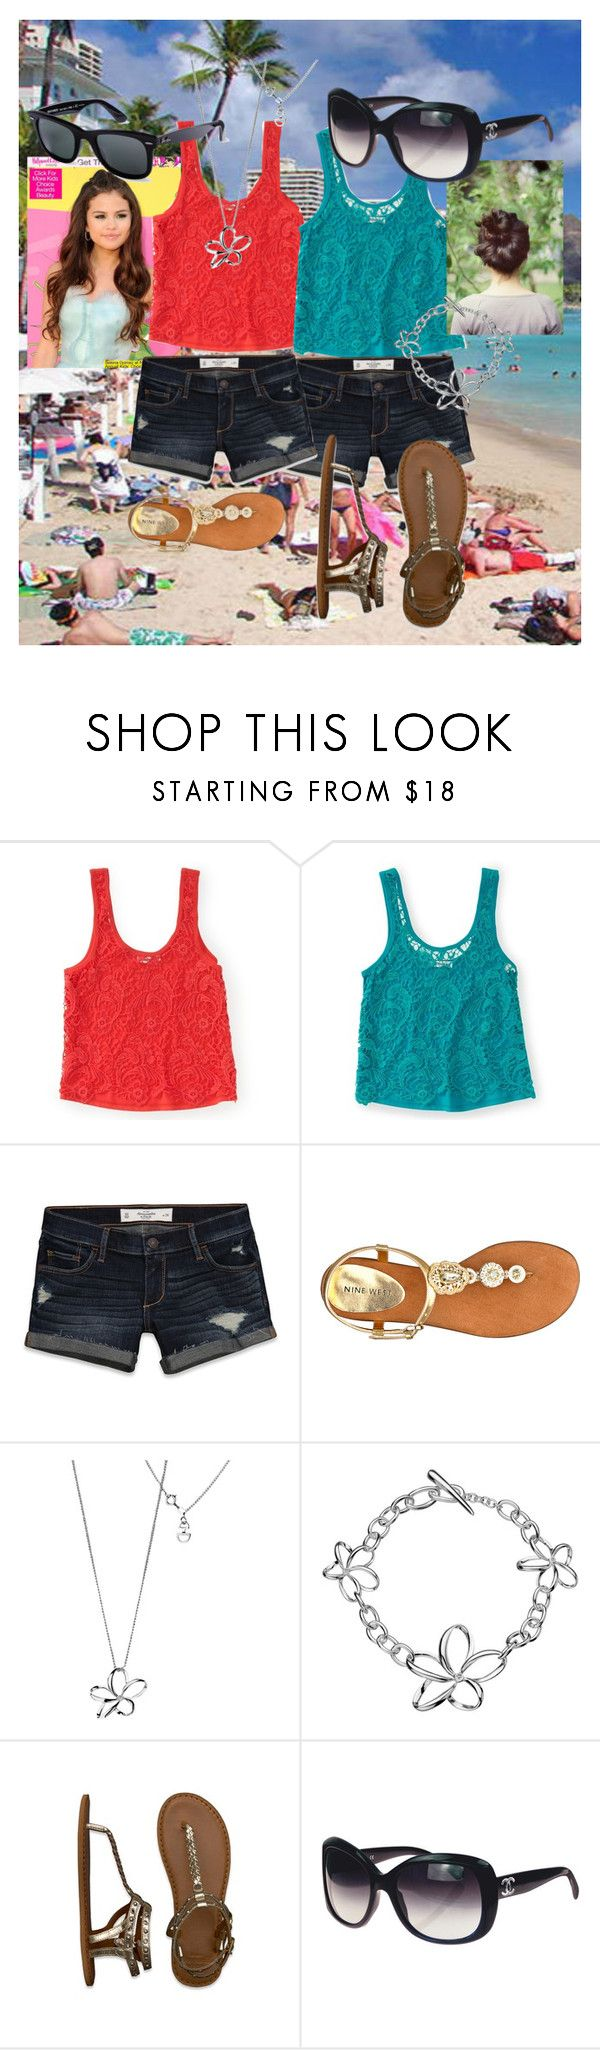 """Hawaii"" by deeda-ferreira ❤ liked on Polyvore featuring Aéropostale, Abercrombie & Fitch, Nine West, Hot Diamonds, Ray-Ban and Chanel"